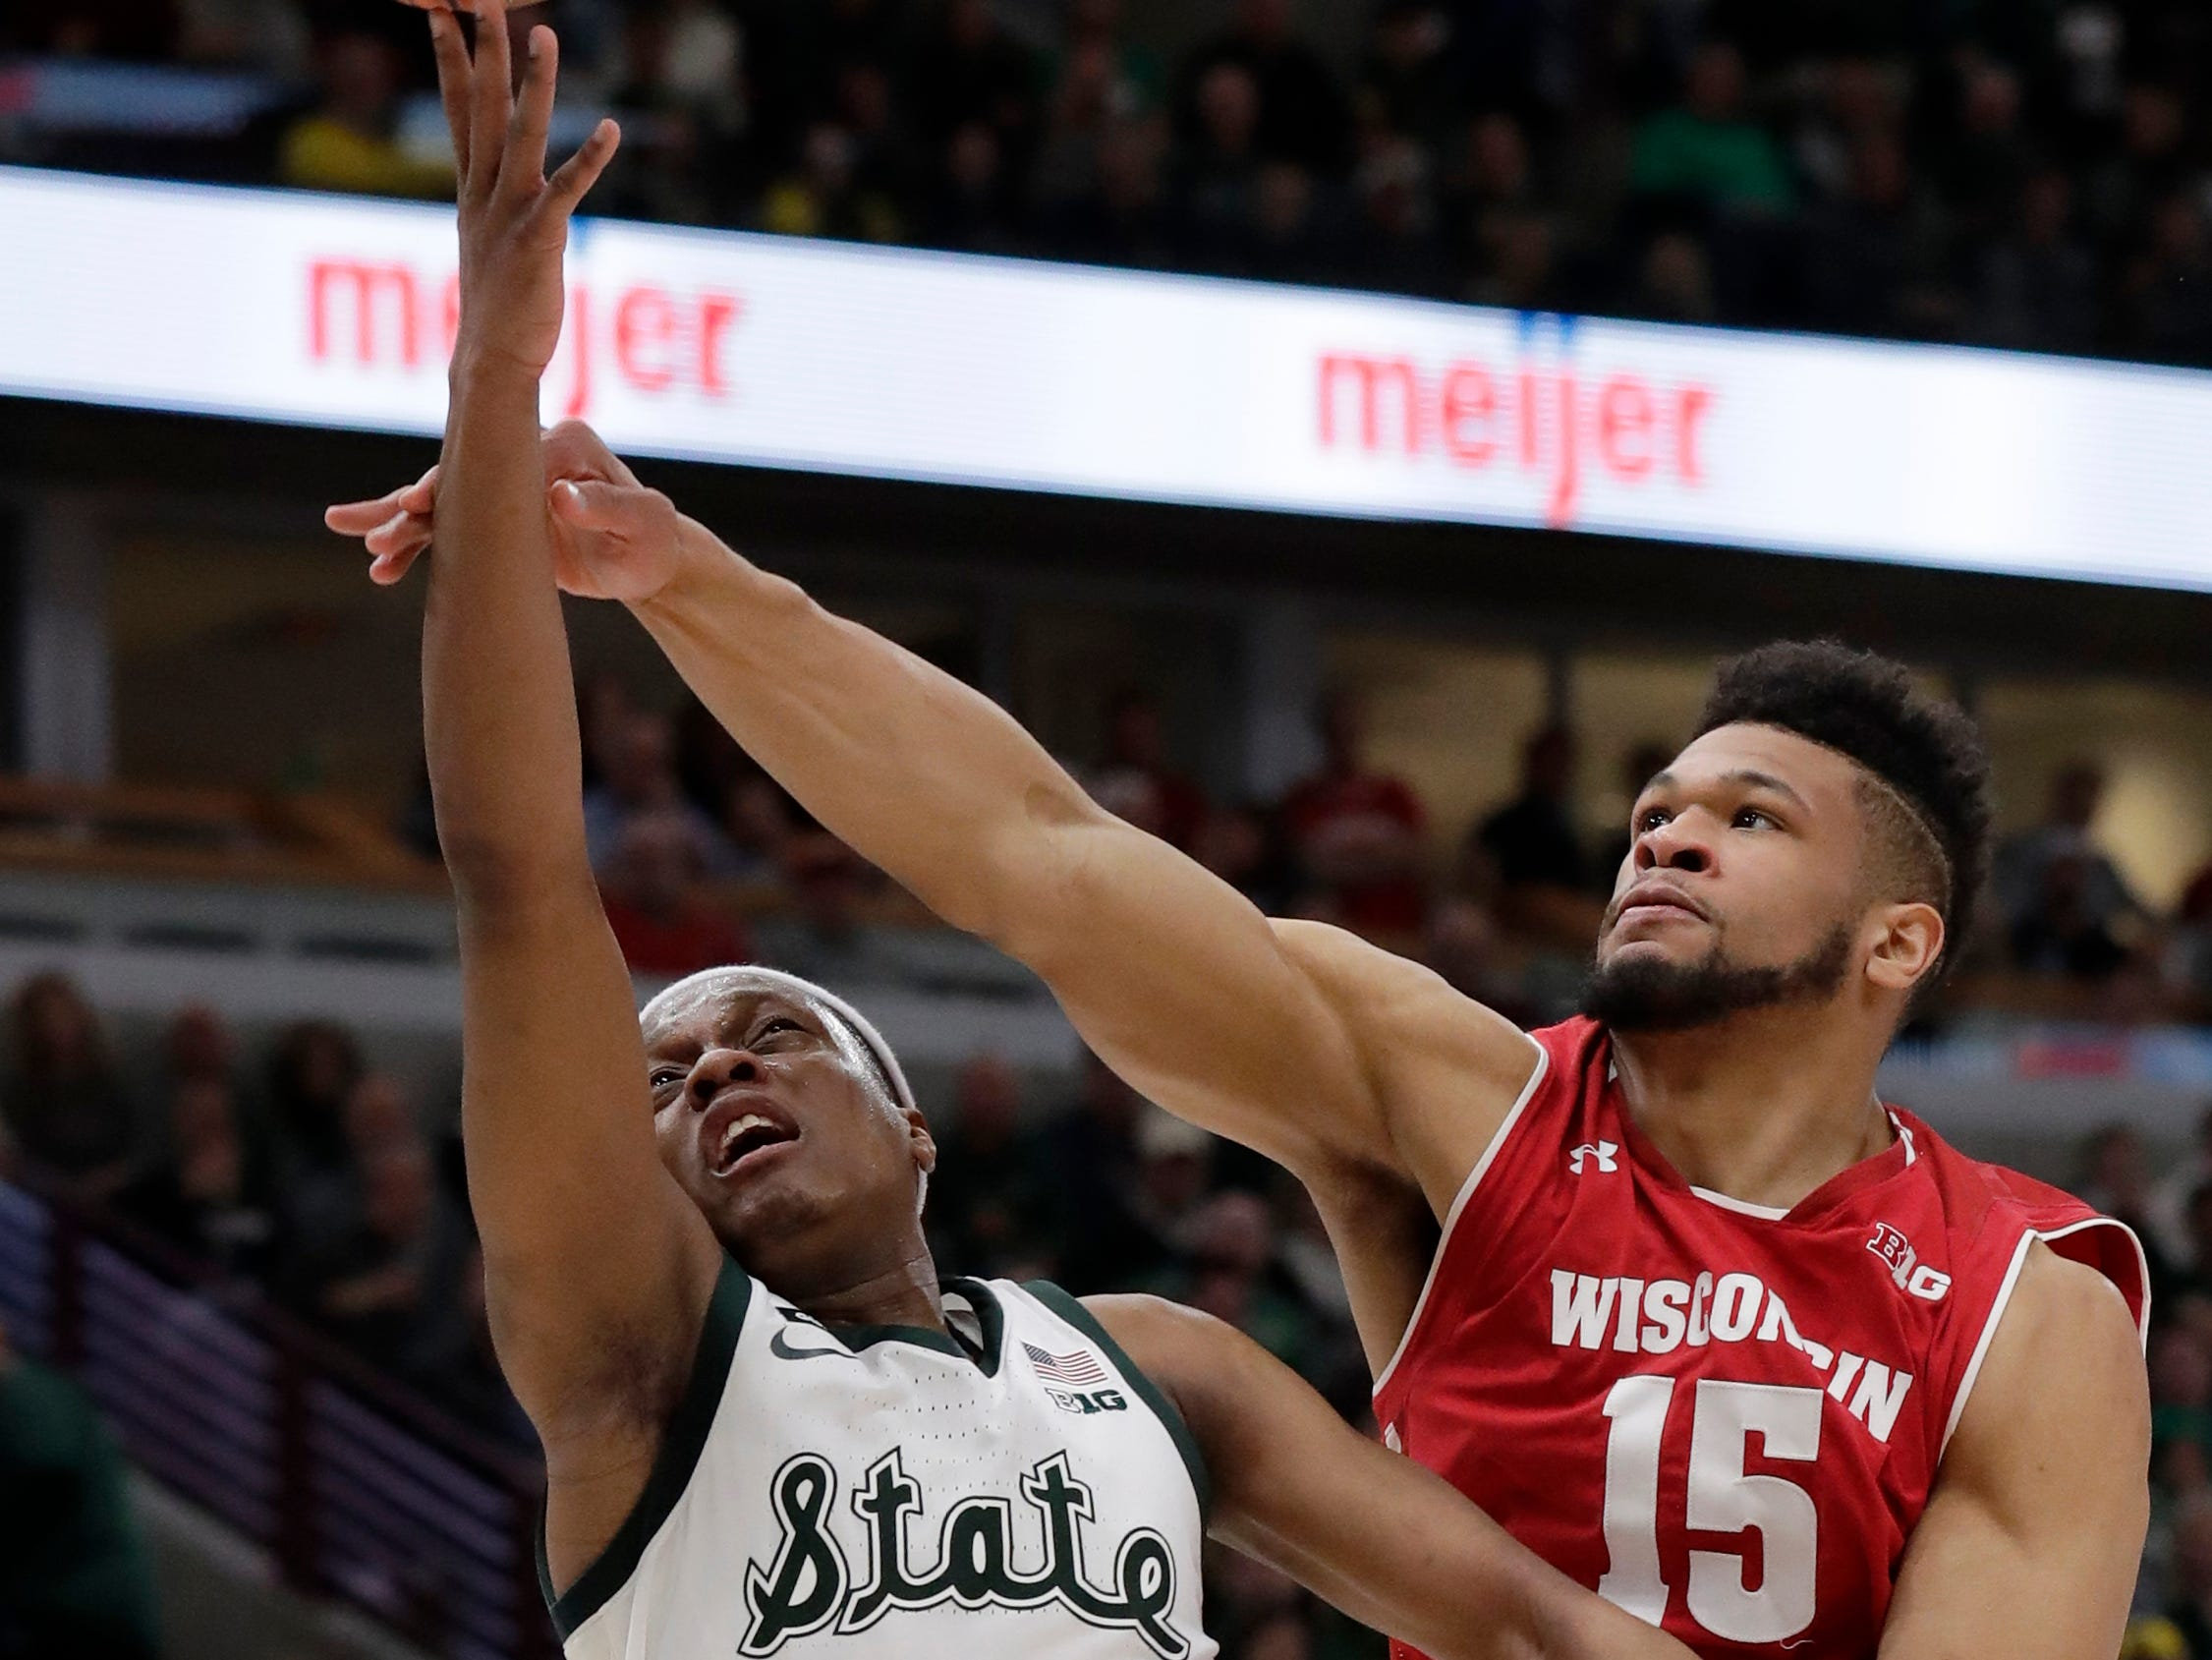 Michigan State's Cassius Winston (5) shoots against Wisconsin's Charles Thomas IV (15) during the second half of an NCAA college basketball game in the semifinals of the Big Ten Conference tournament, Saturday, March 16, 2019, in Chicago.